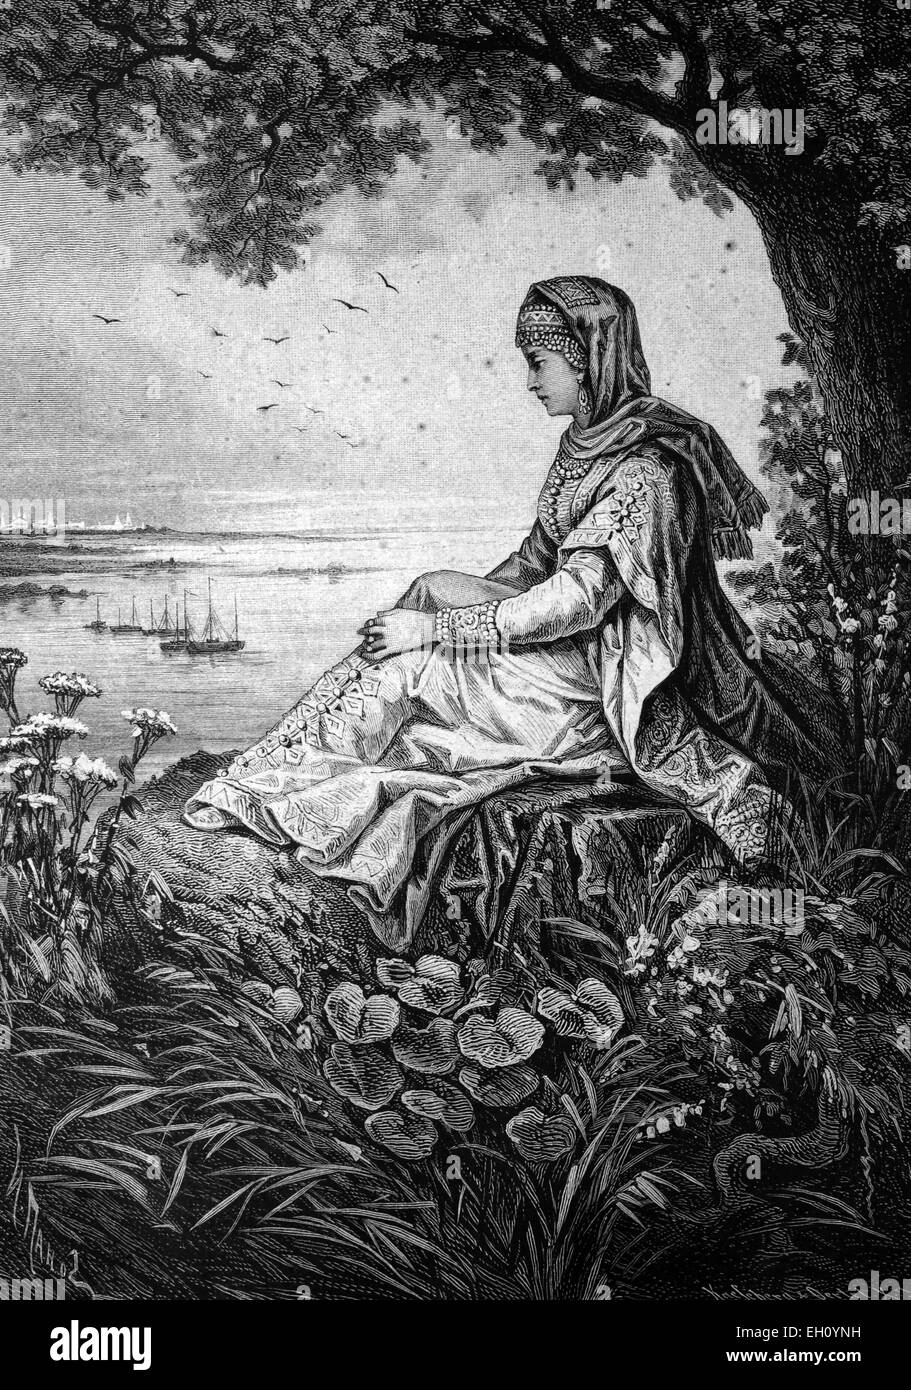 Russian Boyarina, 16th century, Historical illustration, circa 1886 - Stock Image